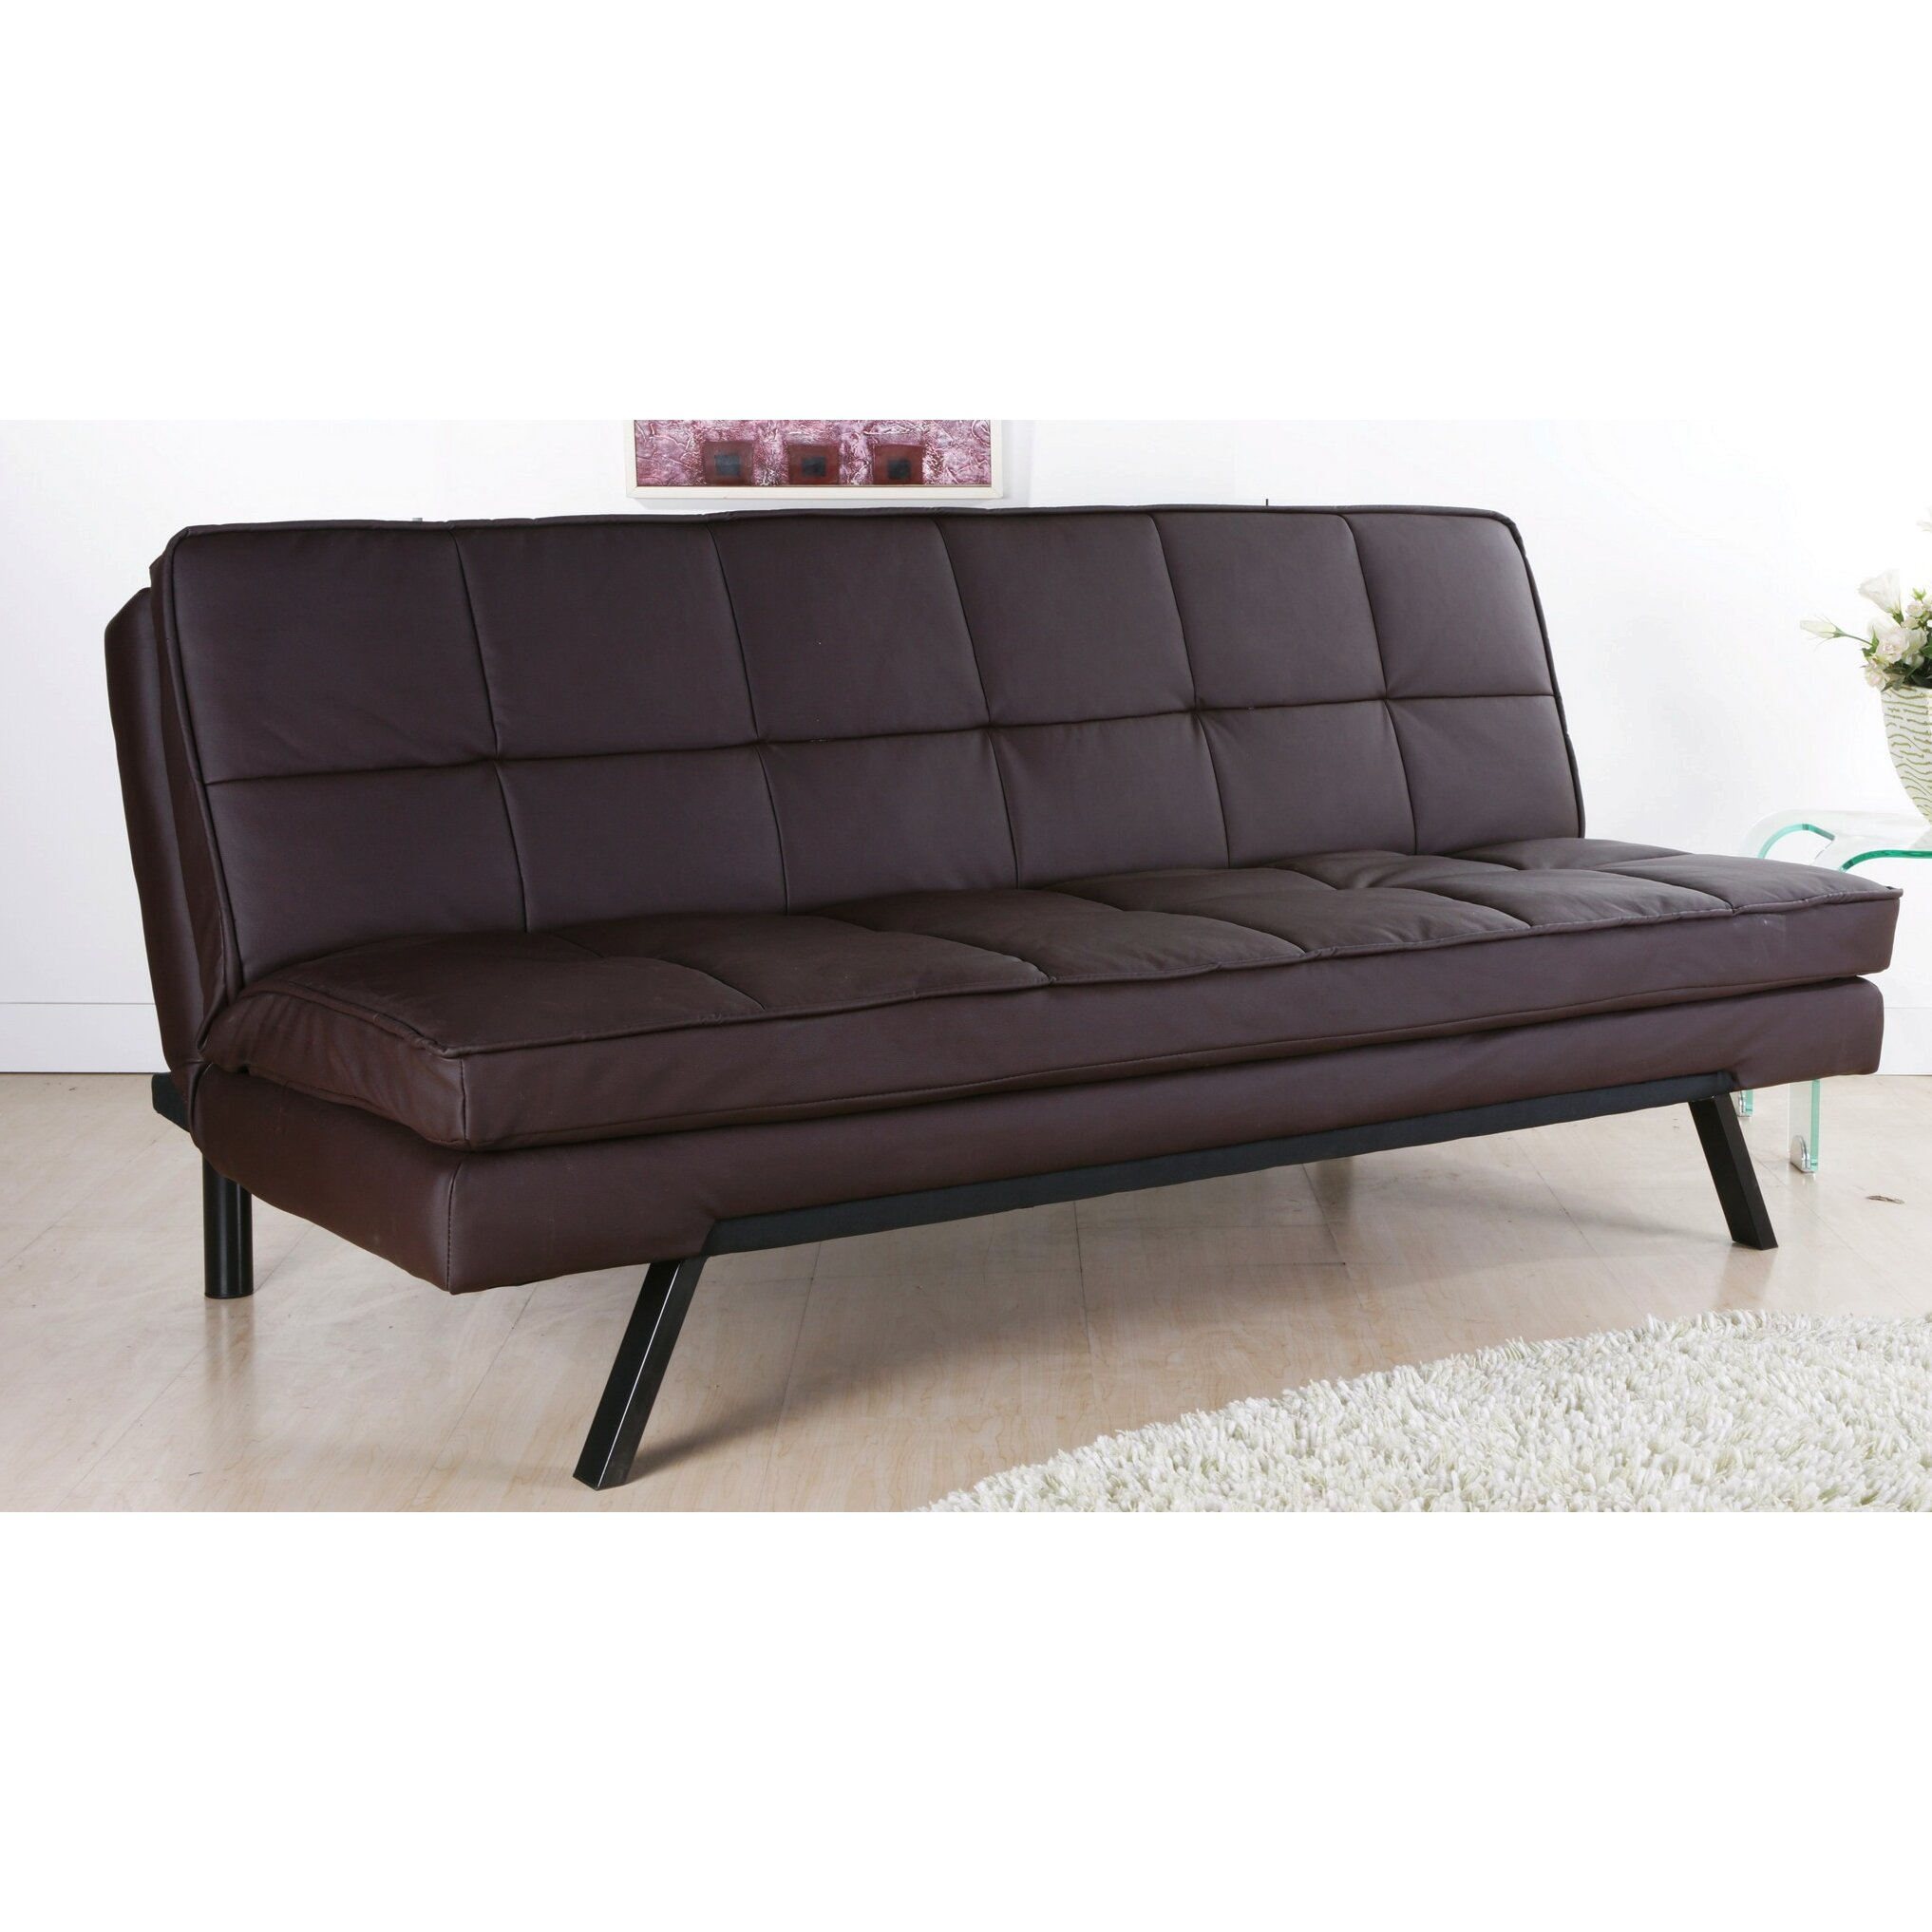 Abbyson Living Convertible Sofa Reviews Wayfair